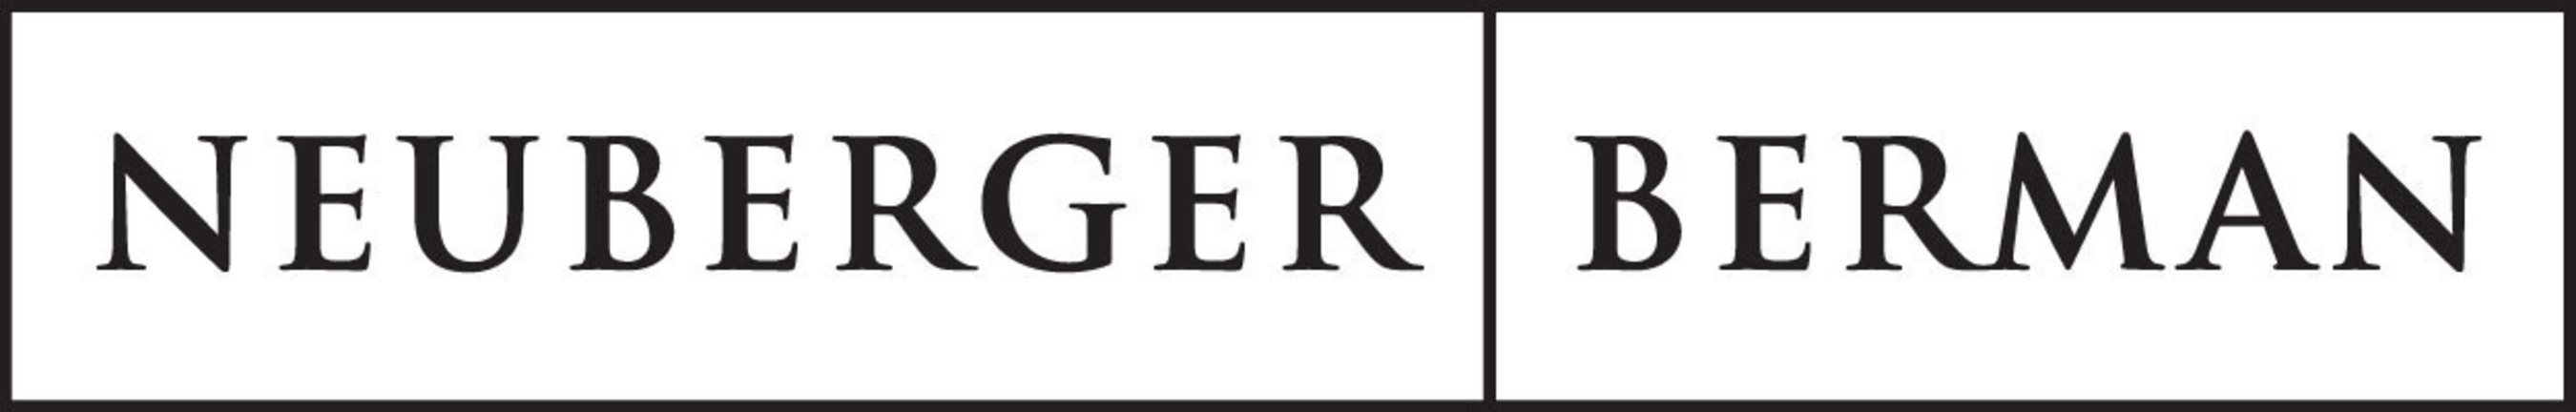 Neuberger Berman, founded in 1939, is a private, independent, employee-owned investment manager. The firm manages equities, fixed income, private equity and hedge fund portfolios for institutions and advisors worldwide. With offices in 18 countries, Neuberger Berman's team is more than 2,100 professionals. Tenured, stable and long-term in focus, the firm fosters an investment culture of fundamental research and independent thinking. For more information, please visit our website at www.nb.com.